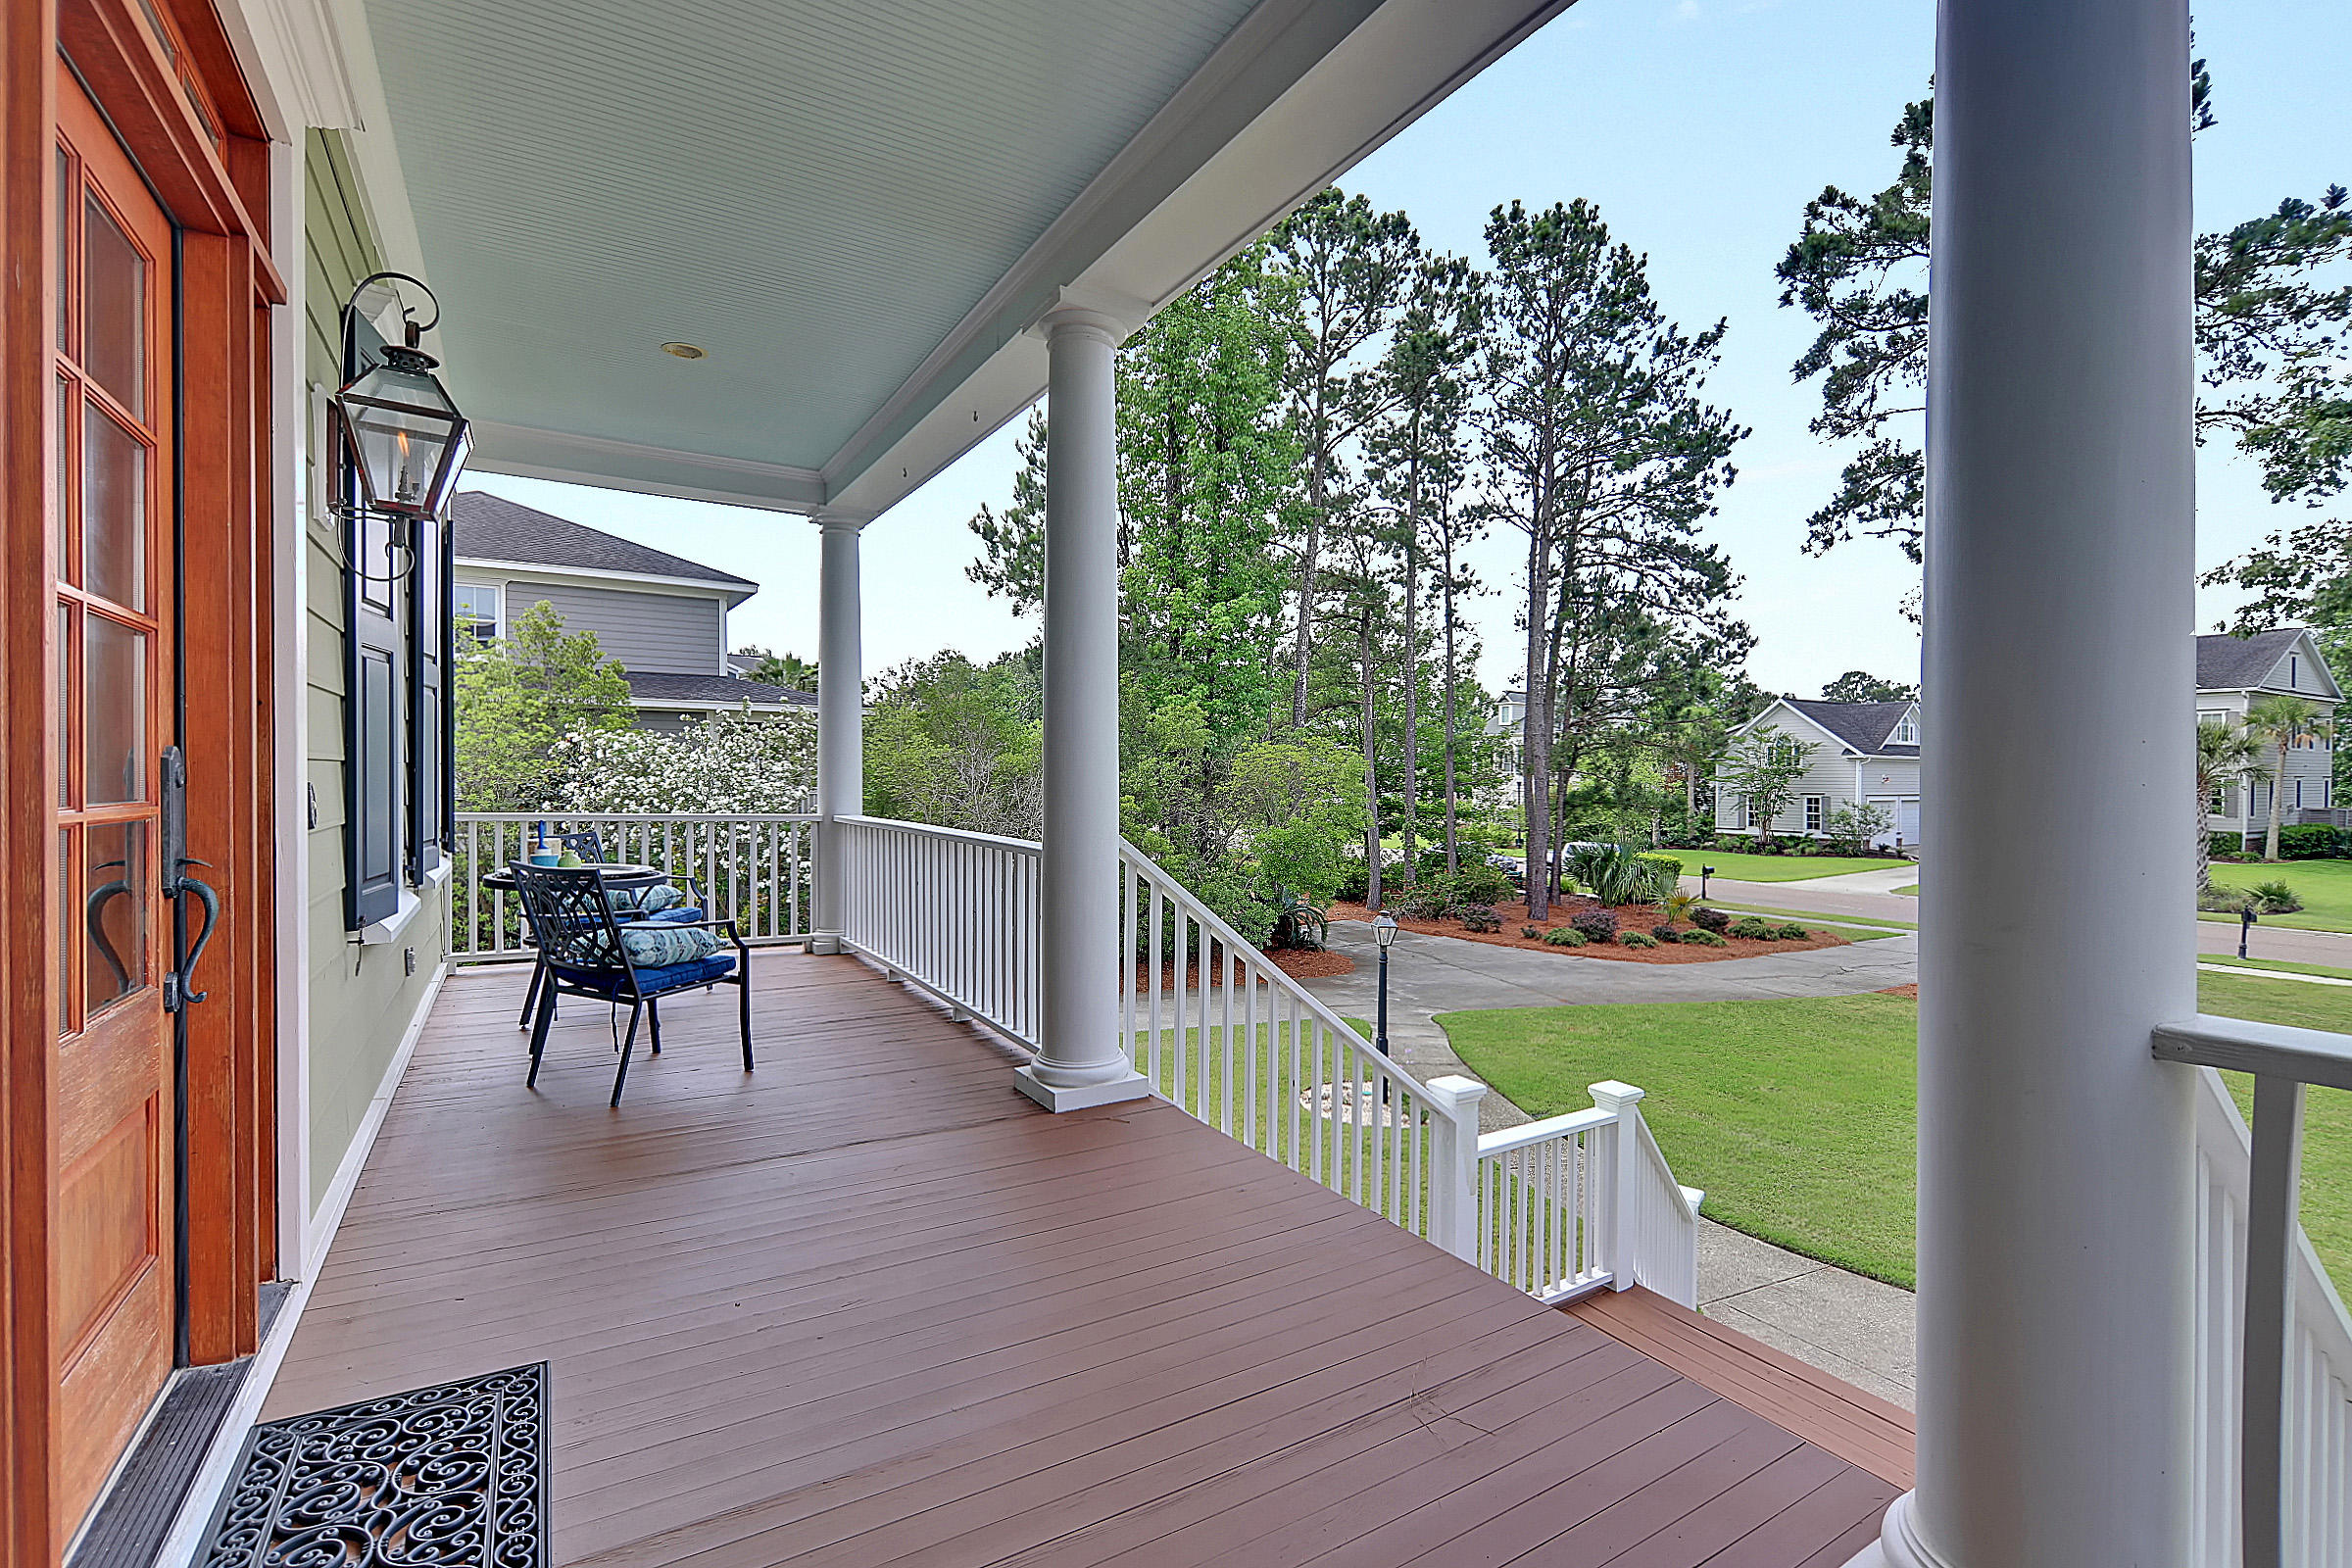 Rivertowne Country Club Homes For Sale - 1537 Rivertowne Country Club, Mount Pleasant, SC - 55